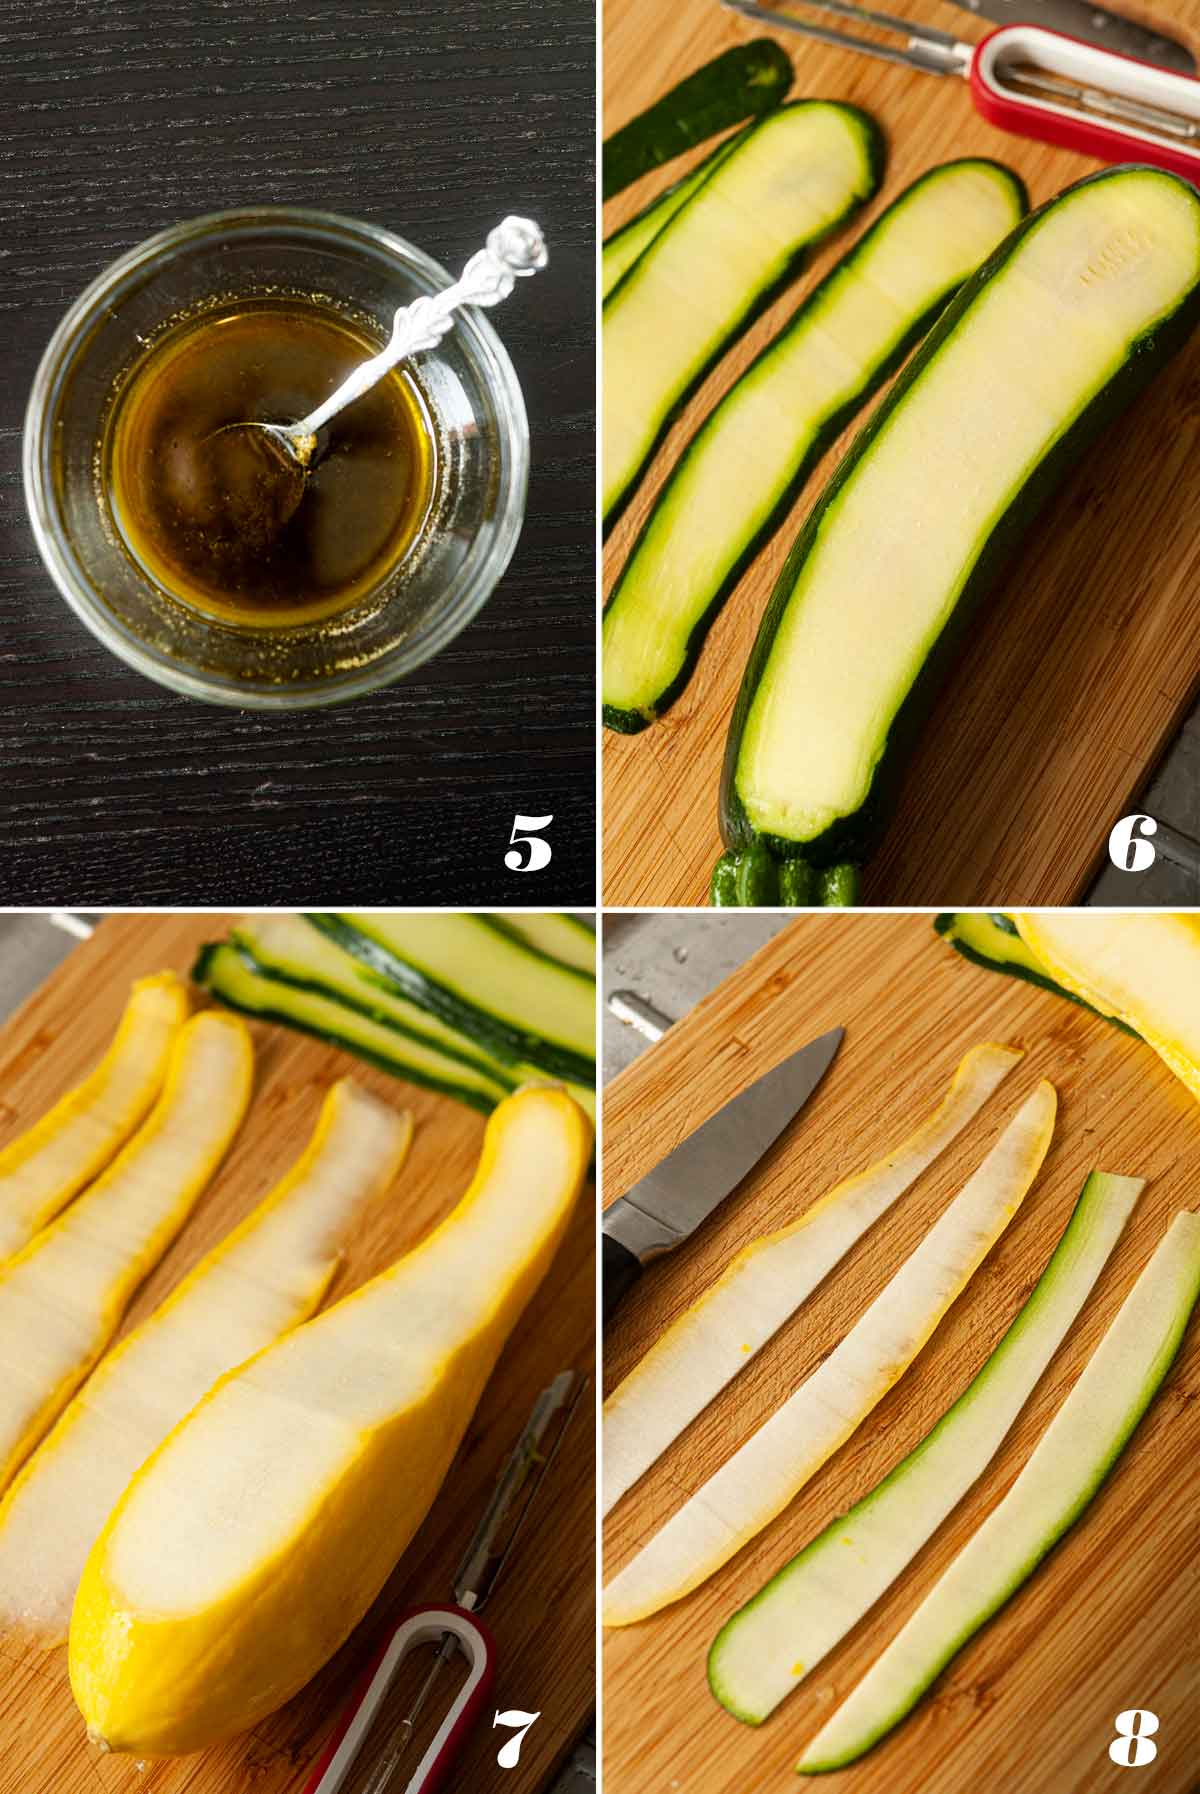 A collage of 4 numbered images showing how to prepare zucchini.